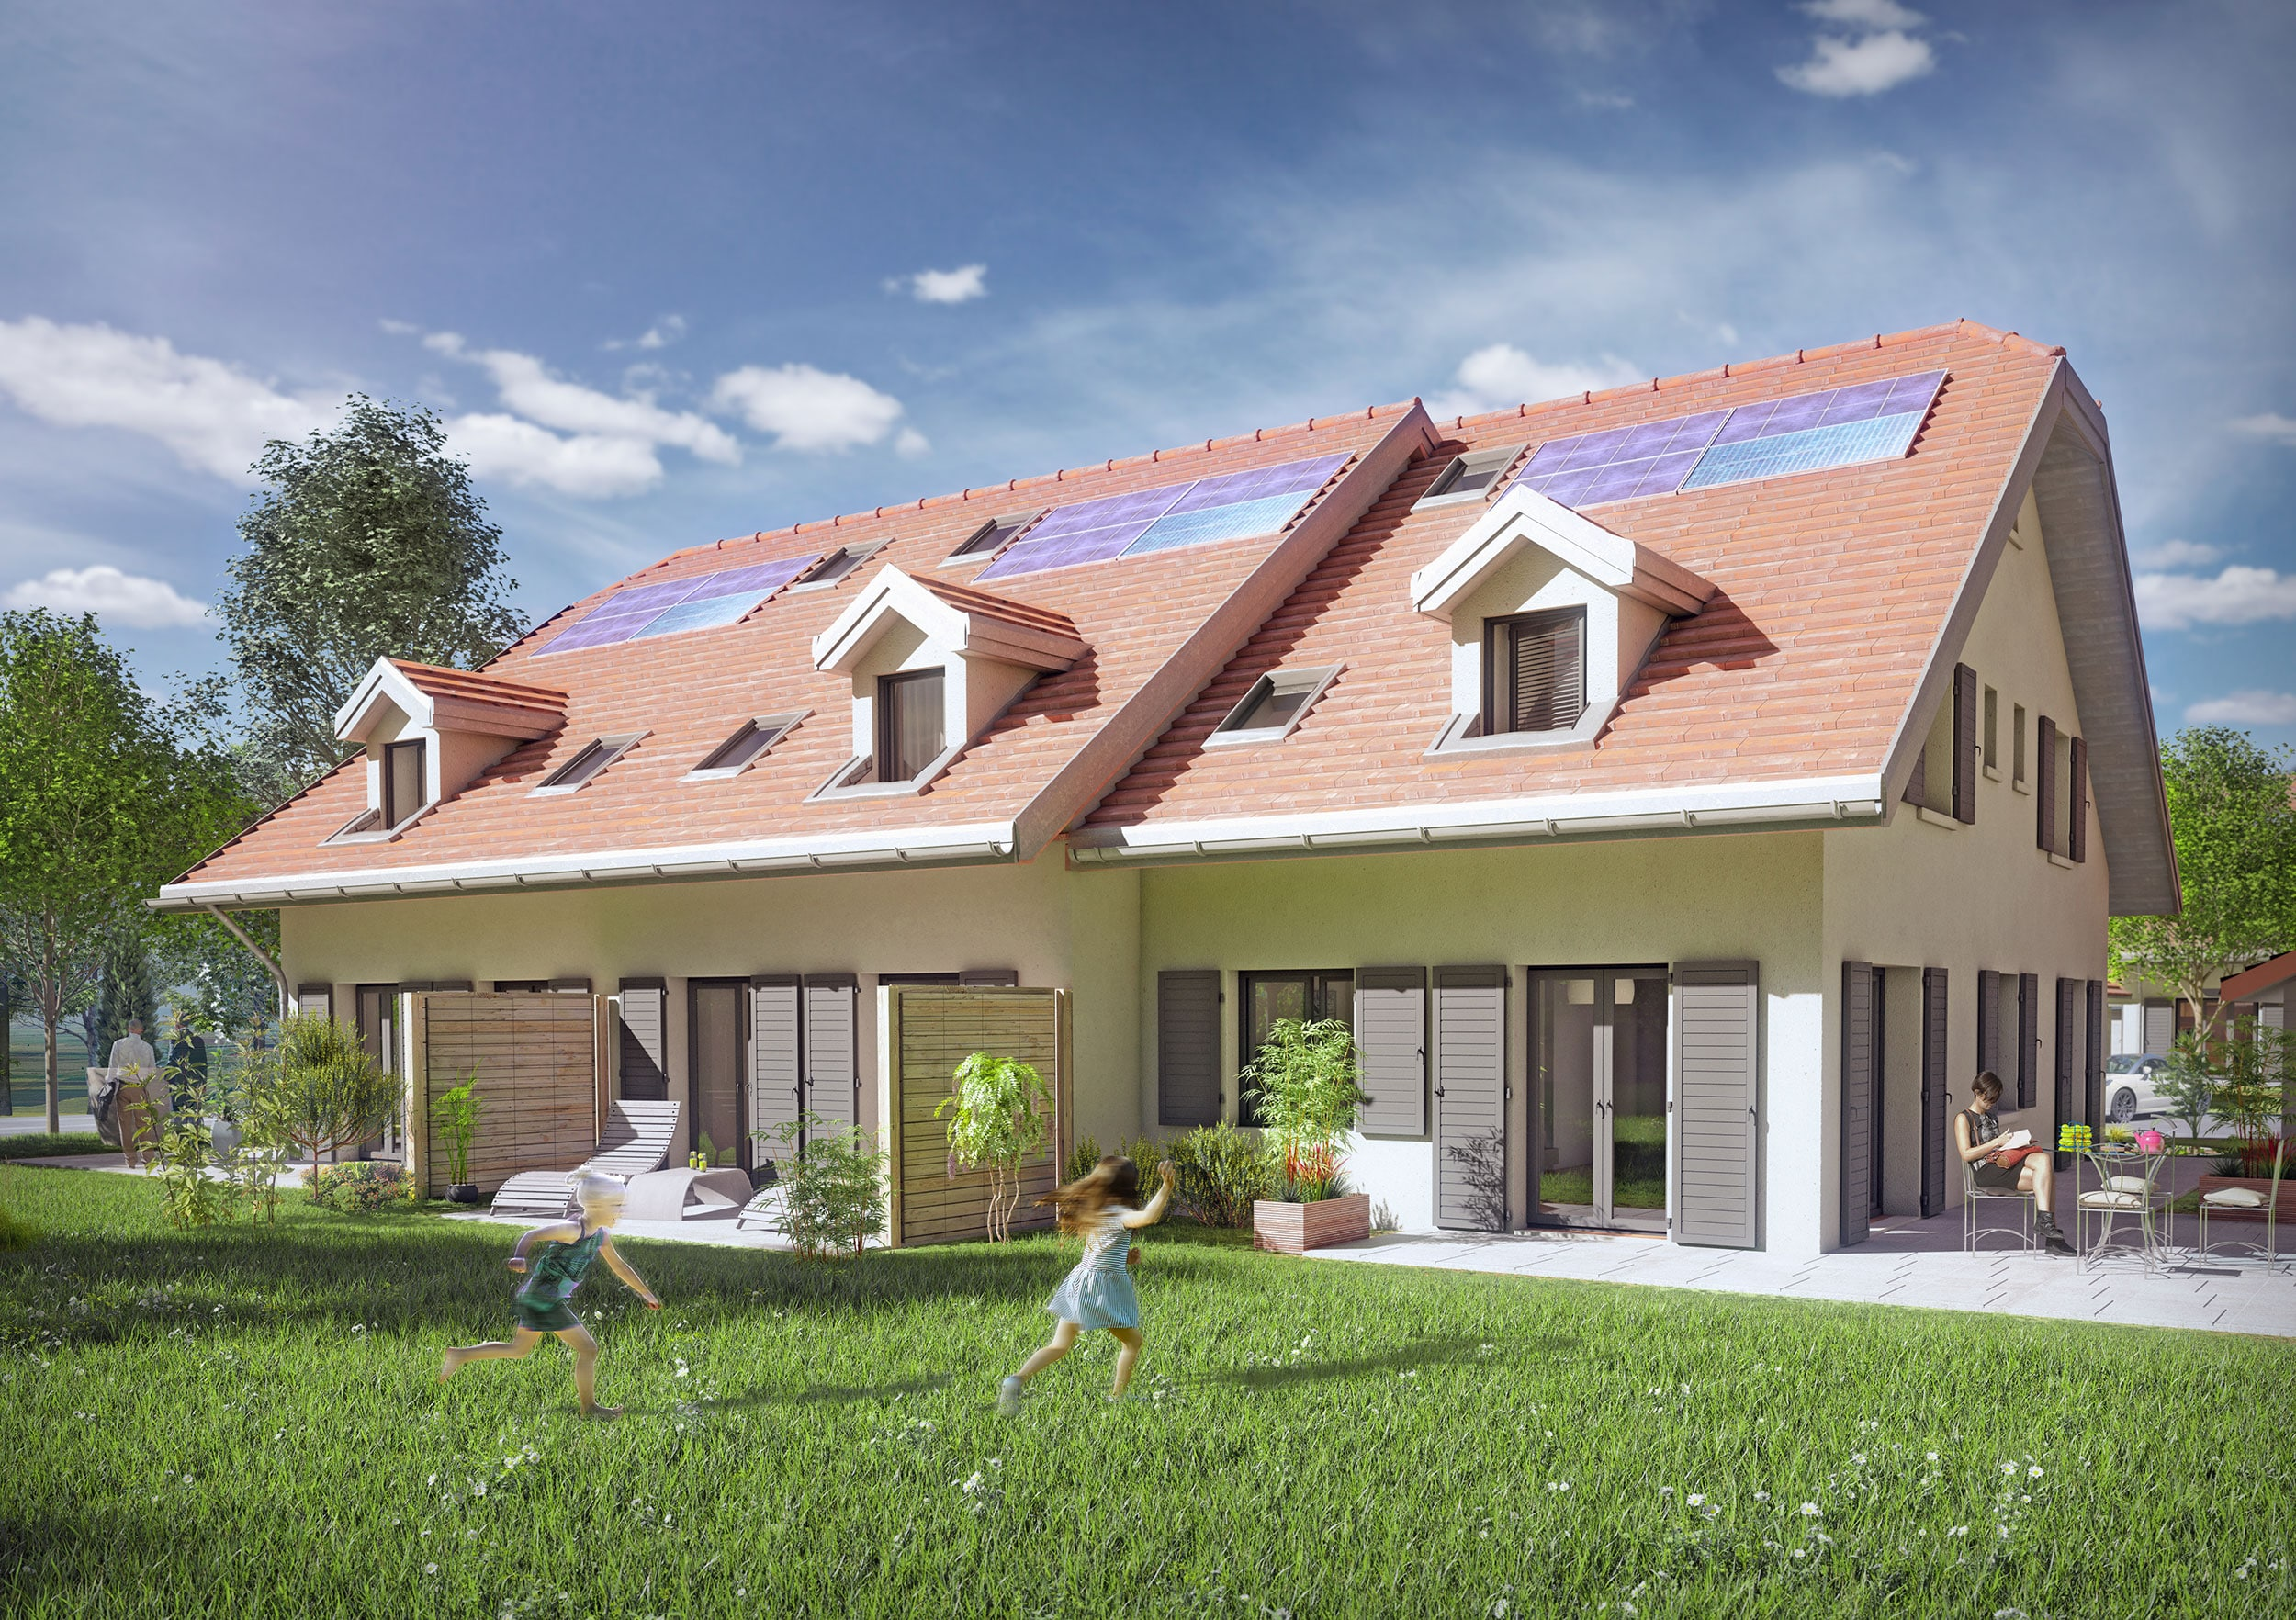 Illustration-perspective 3D villas d'un ensemble de résidences au style Vaudois, appartements en villas contiguës